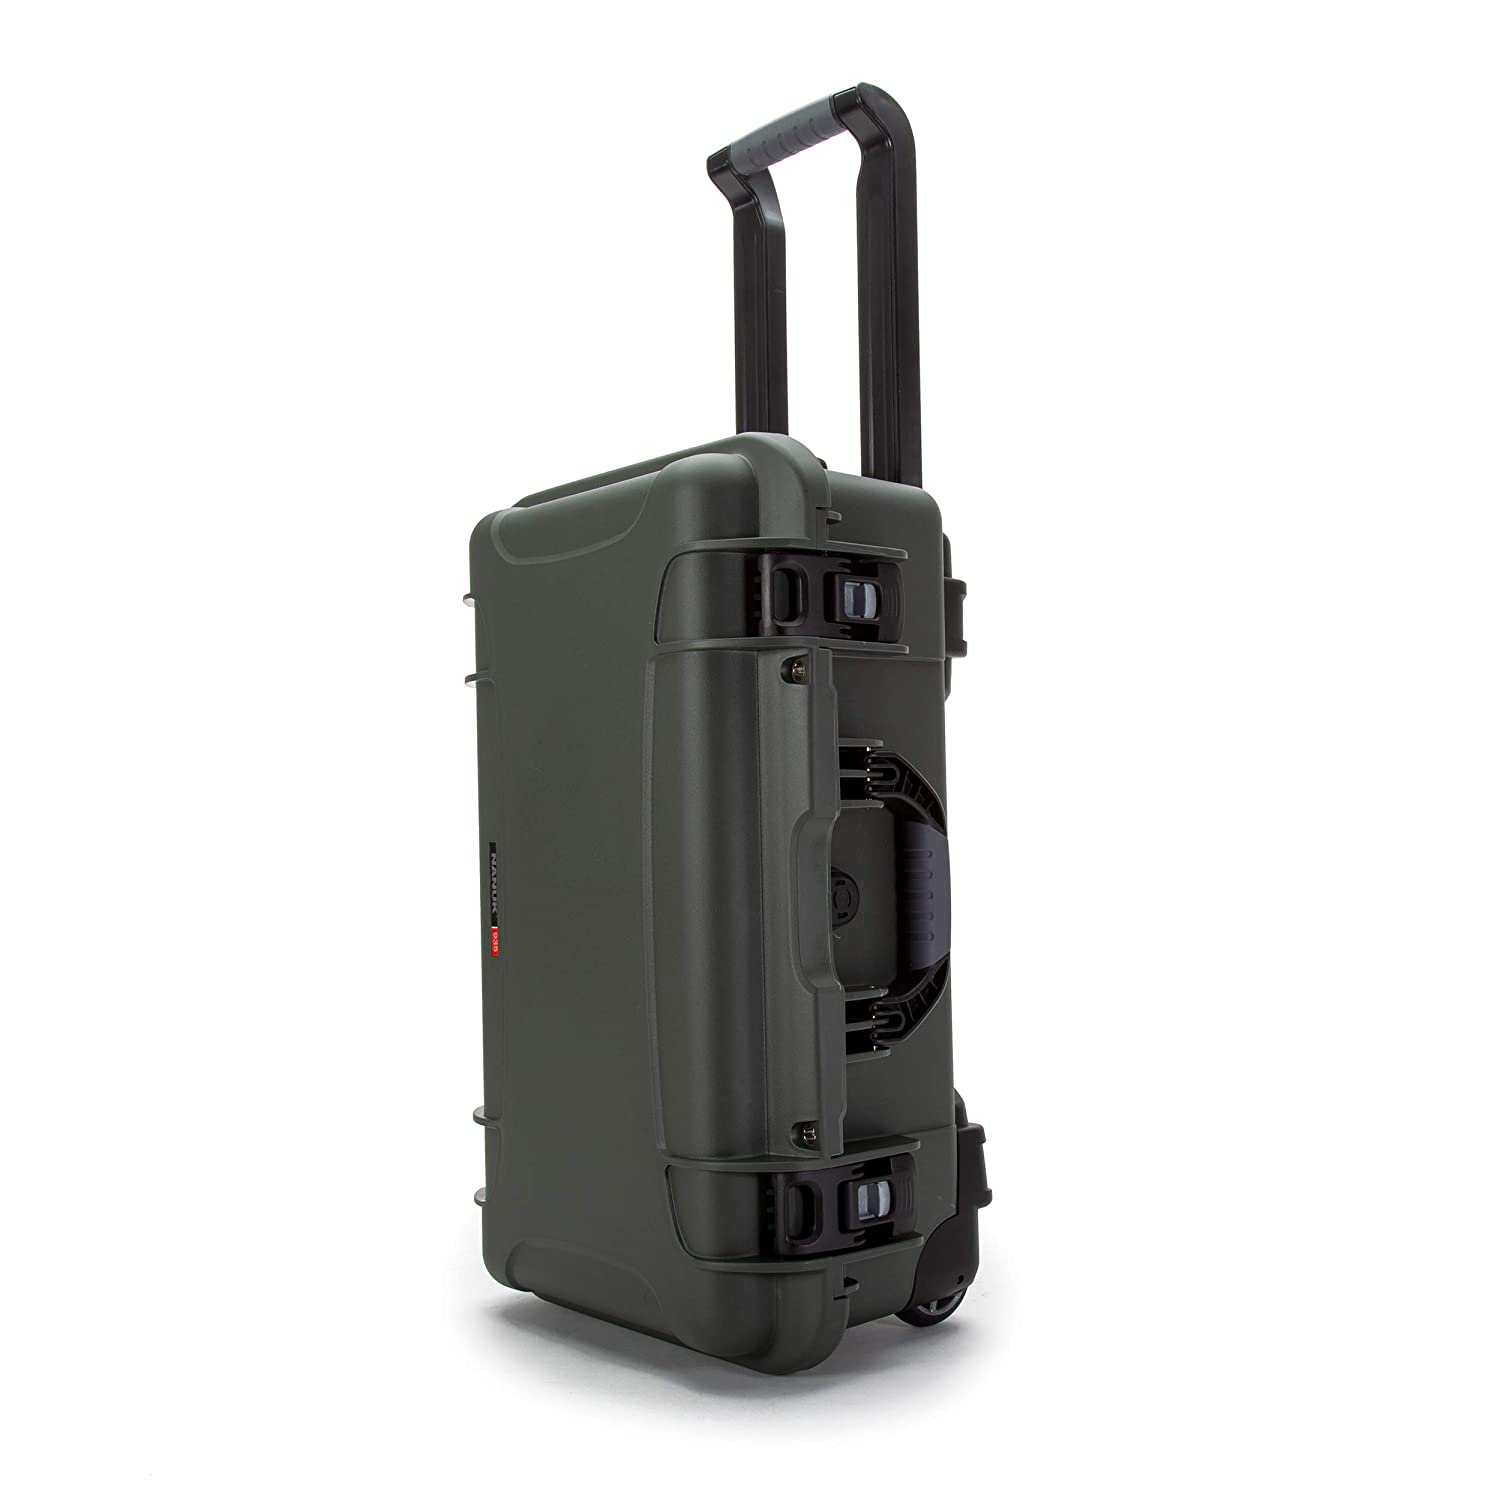 Protective 935 Case with Padded Dividers (Olive) B00BP8UH5Y オリーブ パッド付きデバイダー